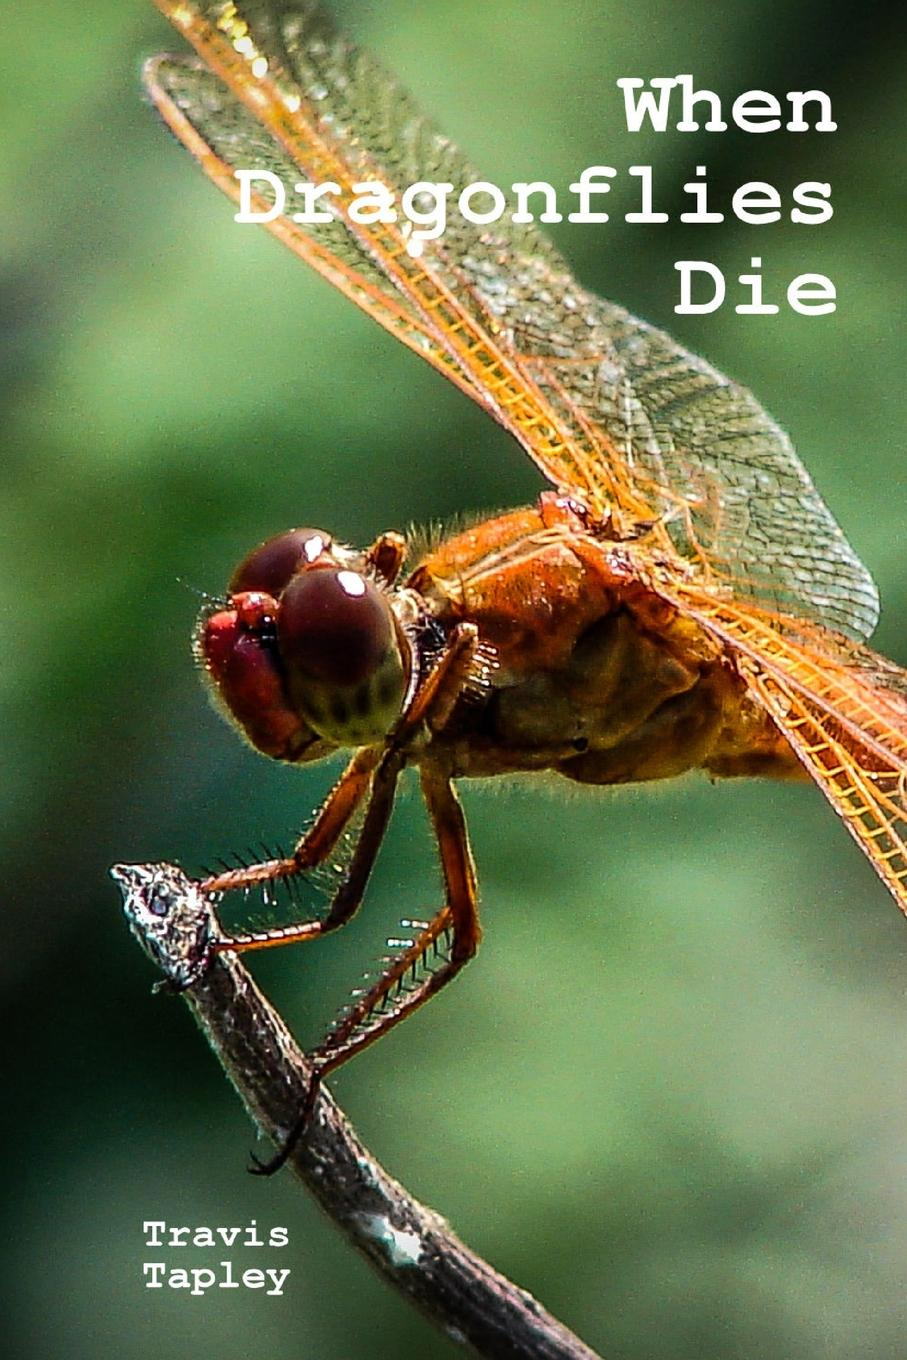 Travis Tapley When Dragonflies Die edison mike i have fun everywhere i go